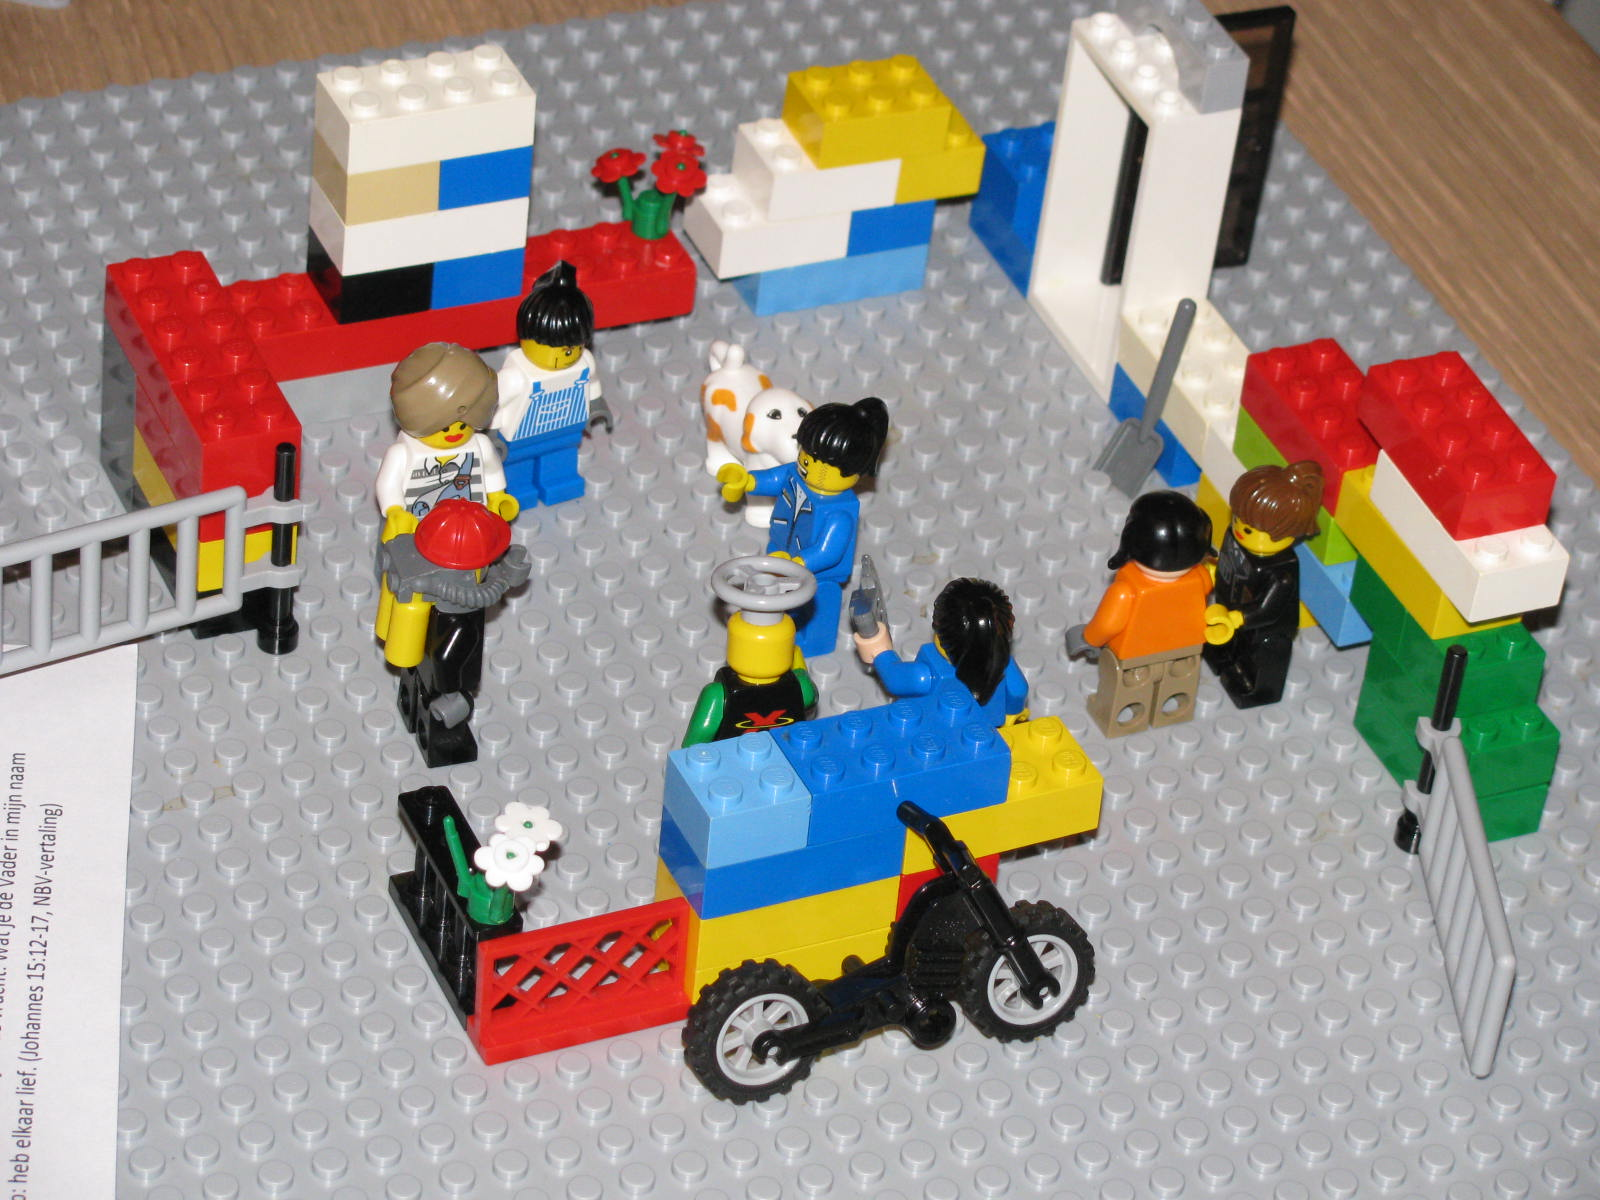 LEGO SERIOUS PLAY at Bible Study Groups. 2nd Revised Model - What is Friendship to You?